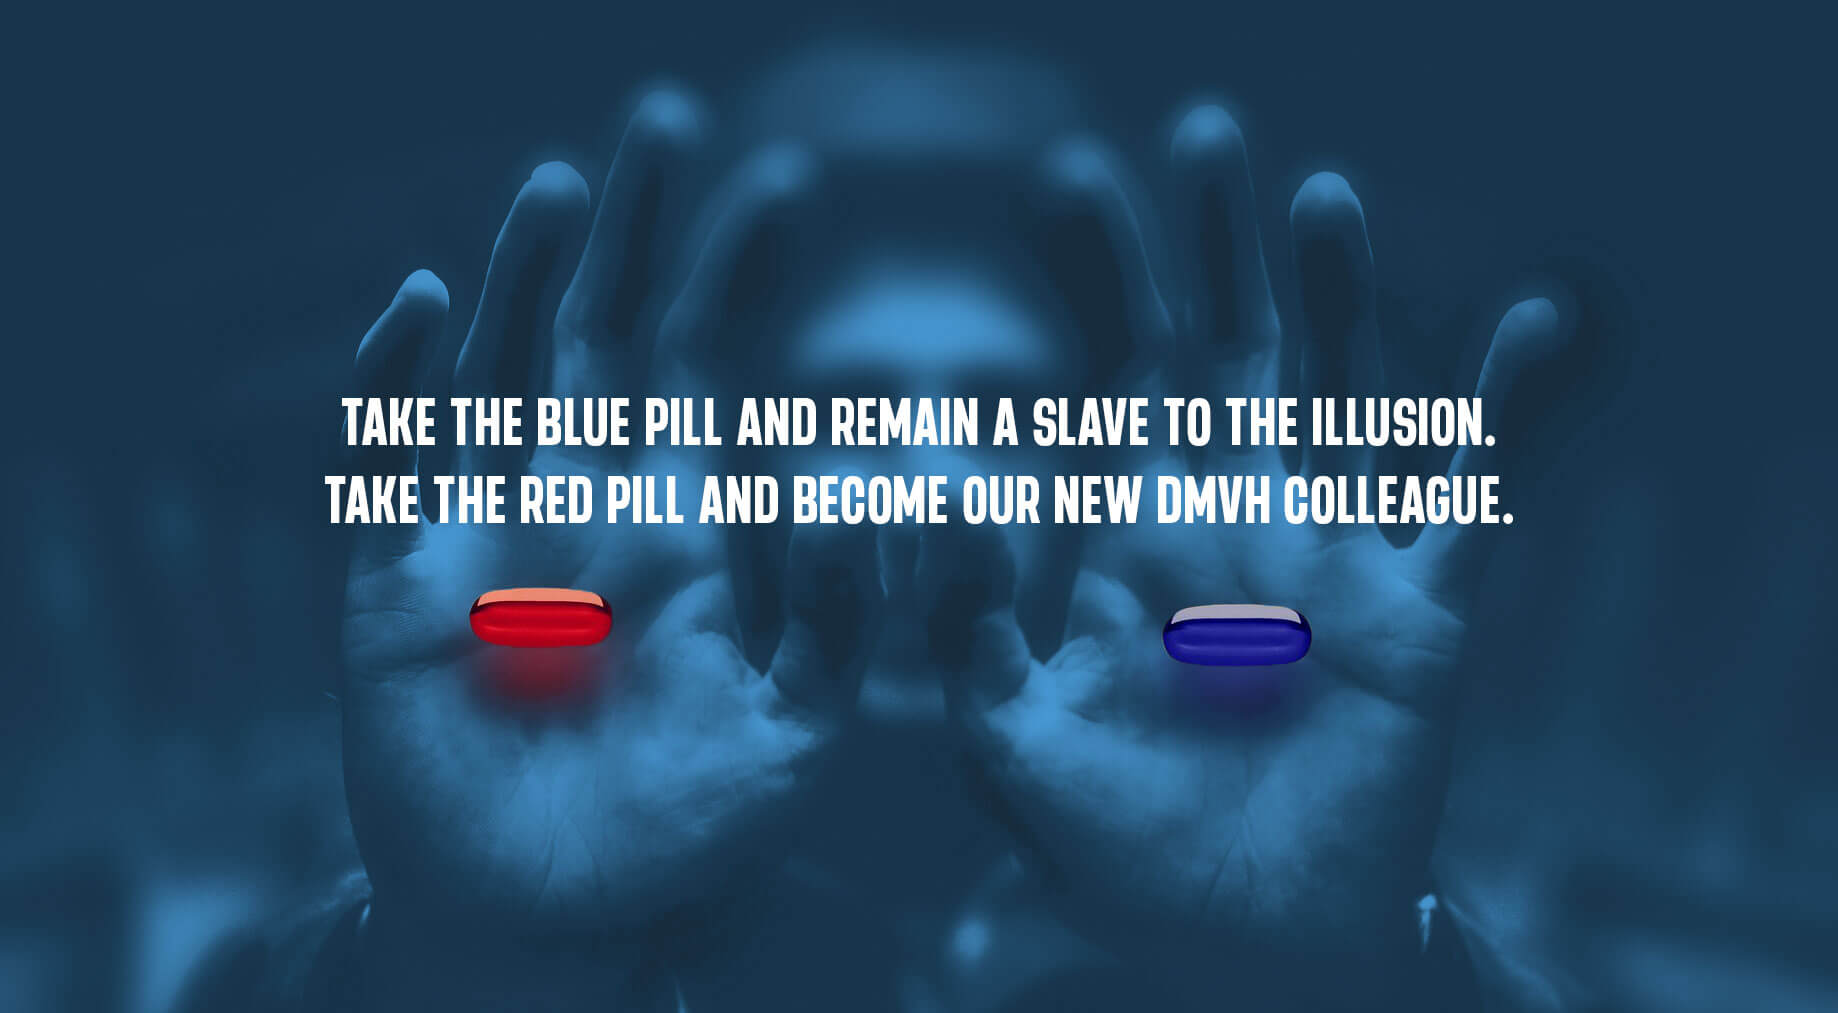 Take the red pill and become our colleague